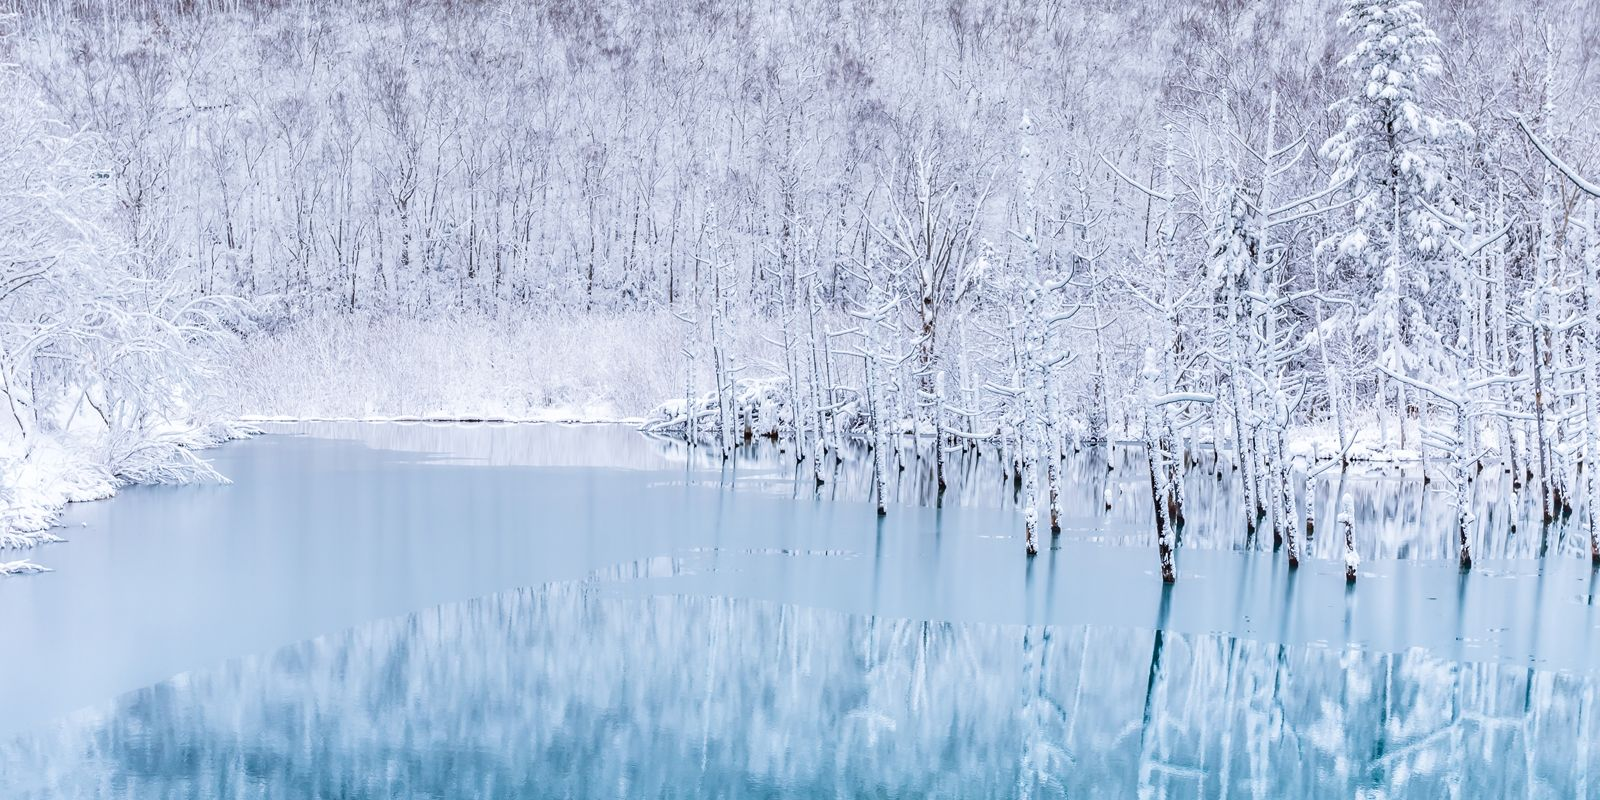 The blue pond in winter